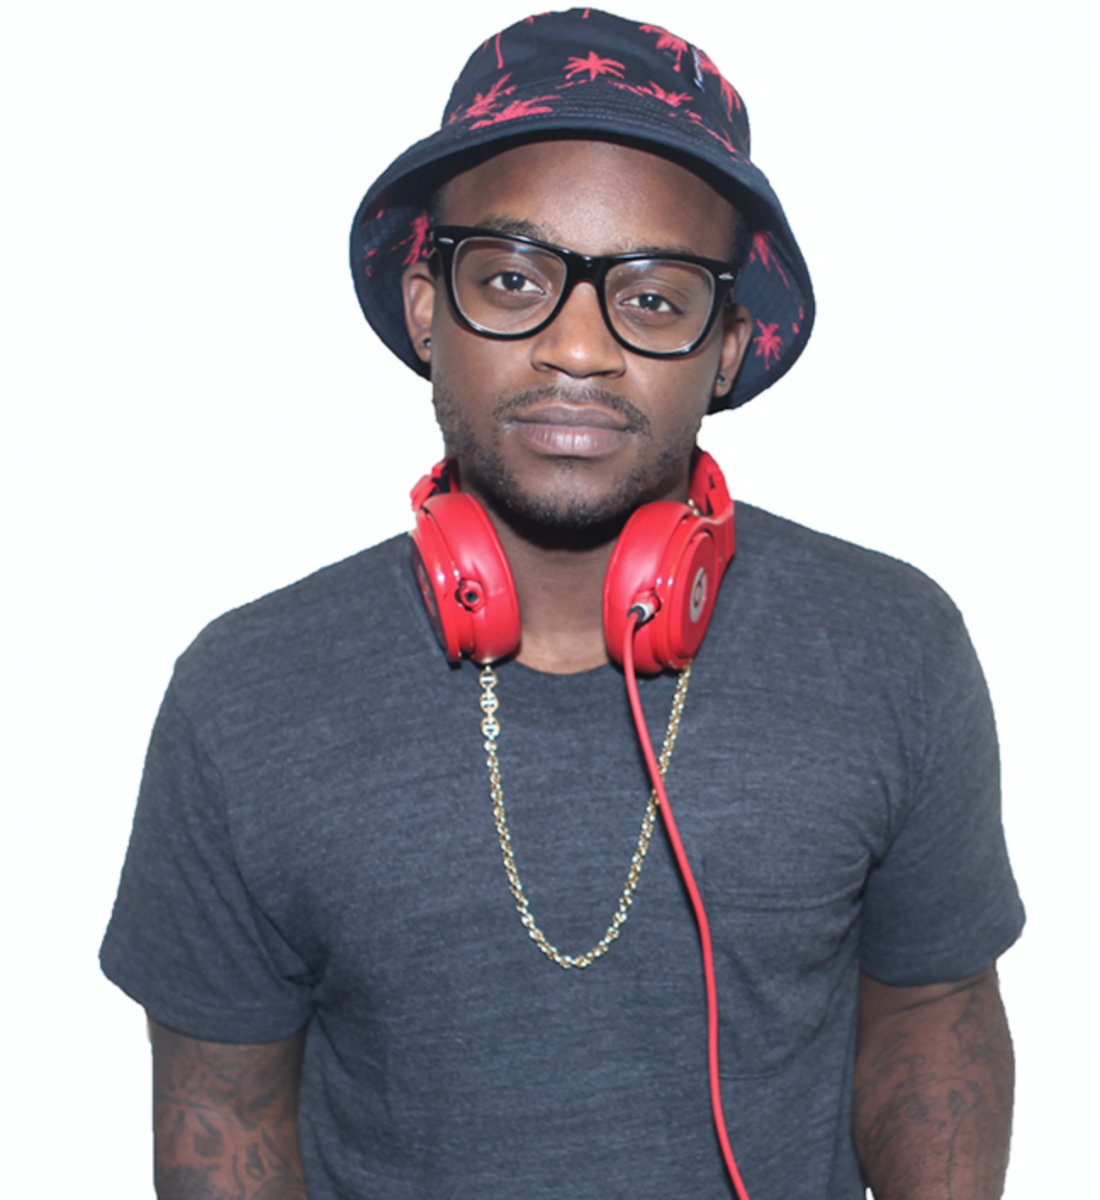 DJ Tay James, Official DJ of Justin Bieber